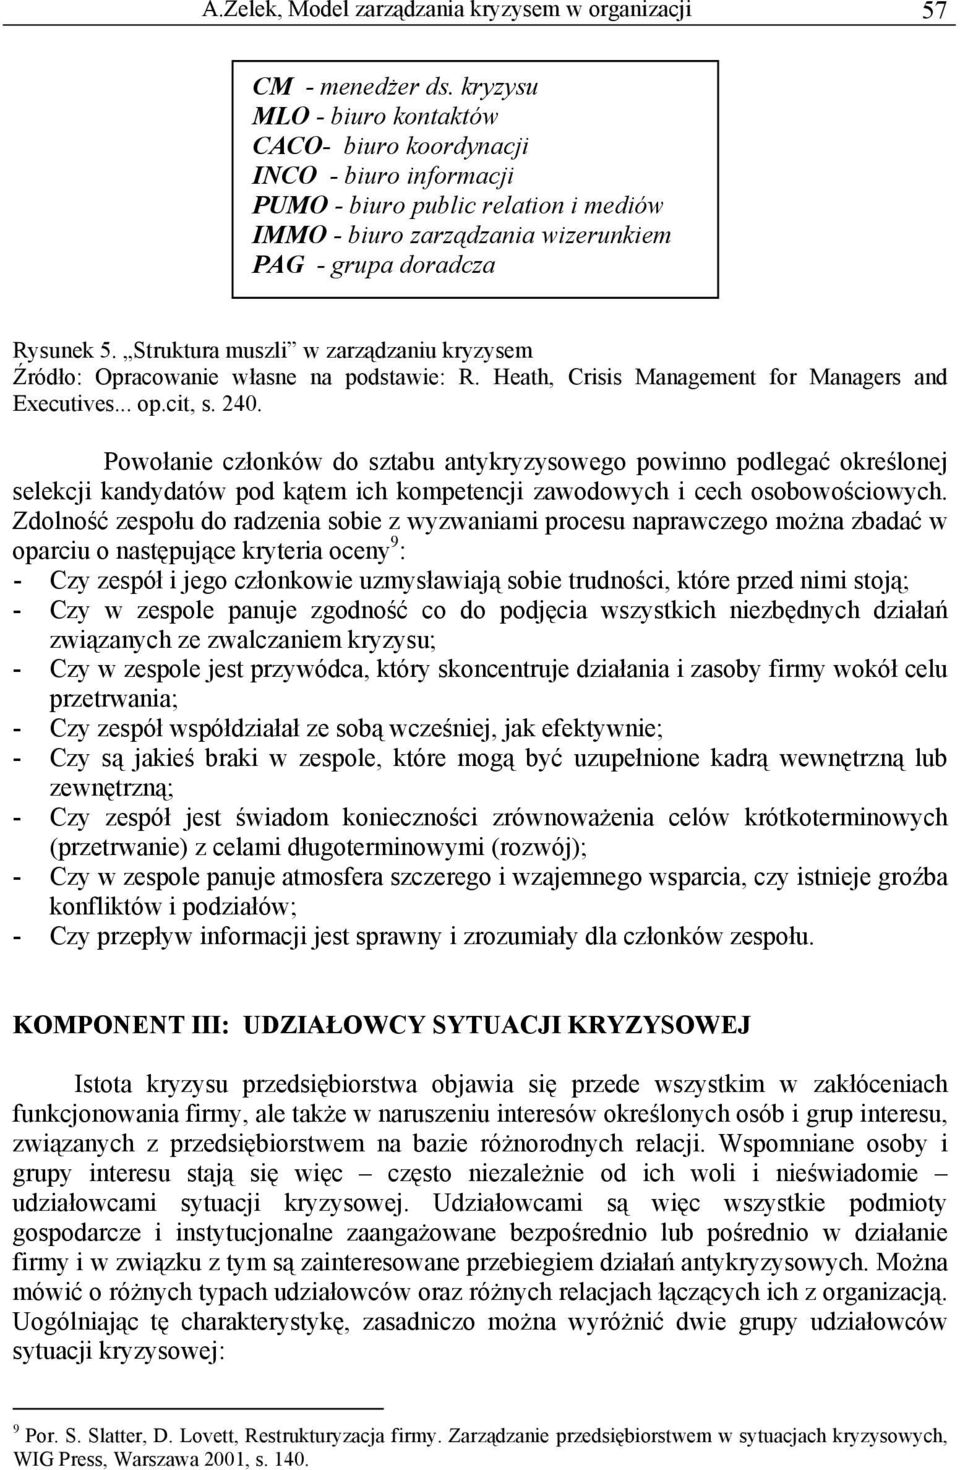 Struktura muszli w zarządzaniu kryzysem Źródło: Opracowanie własne na podstawie: R. Heath, Crisis Management for Managers and Executives... op.cit, s. 240.